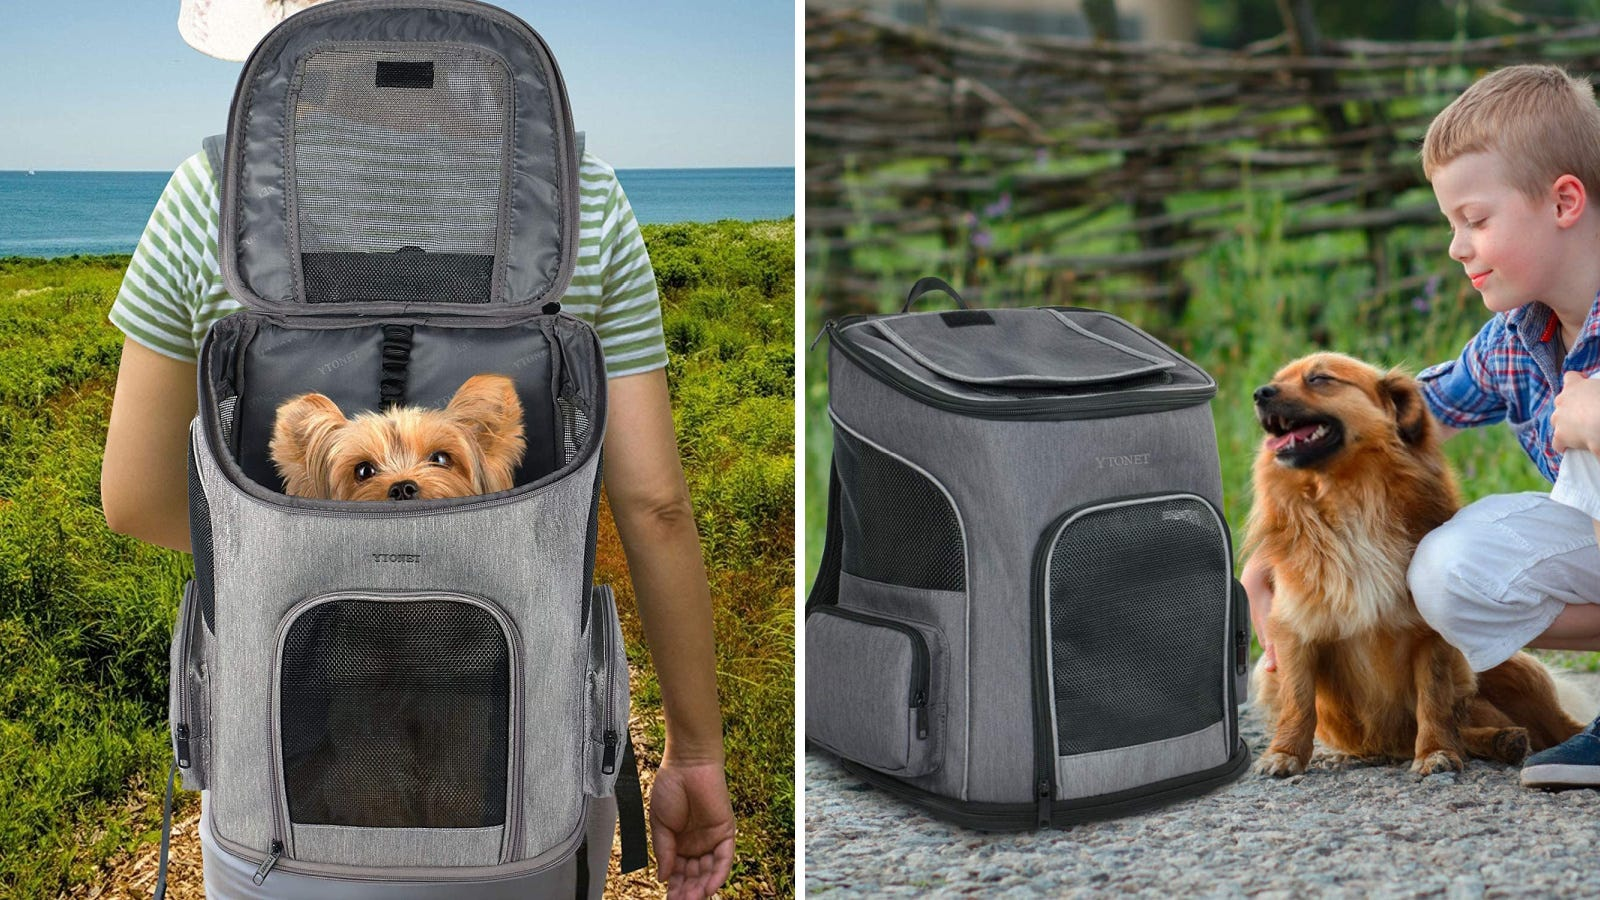 Two images featuring the Ytonet dog carrier backpack. The left image features a hiker carrying their dog by the beach, and the right image features a young child petting their dog by the ytonet carrier.